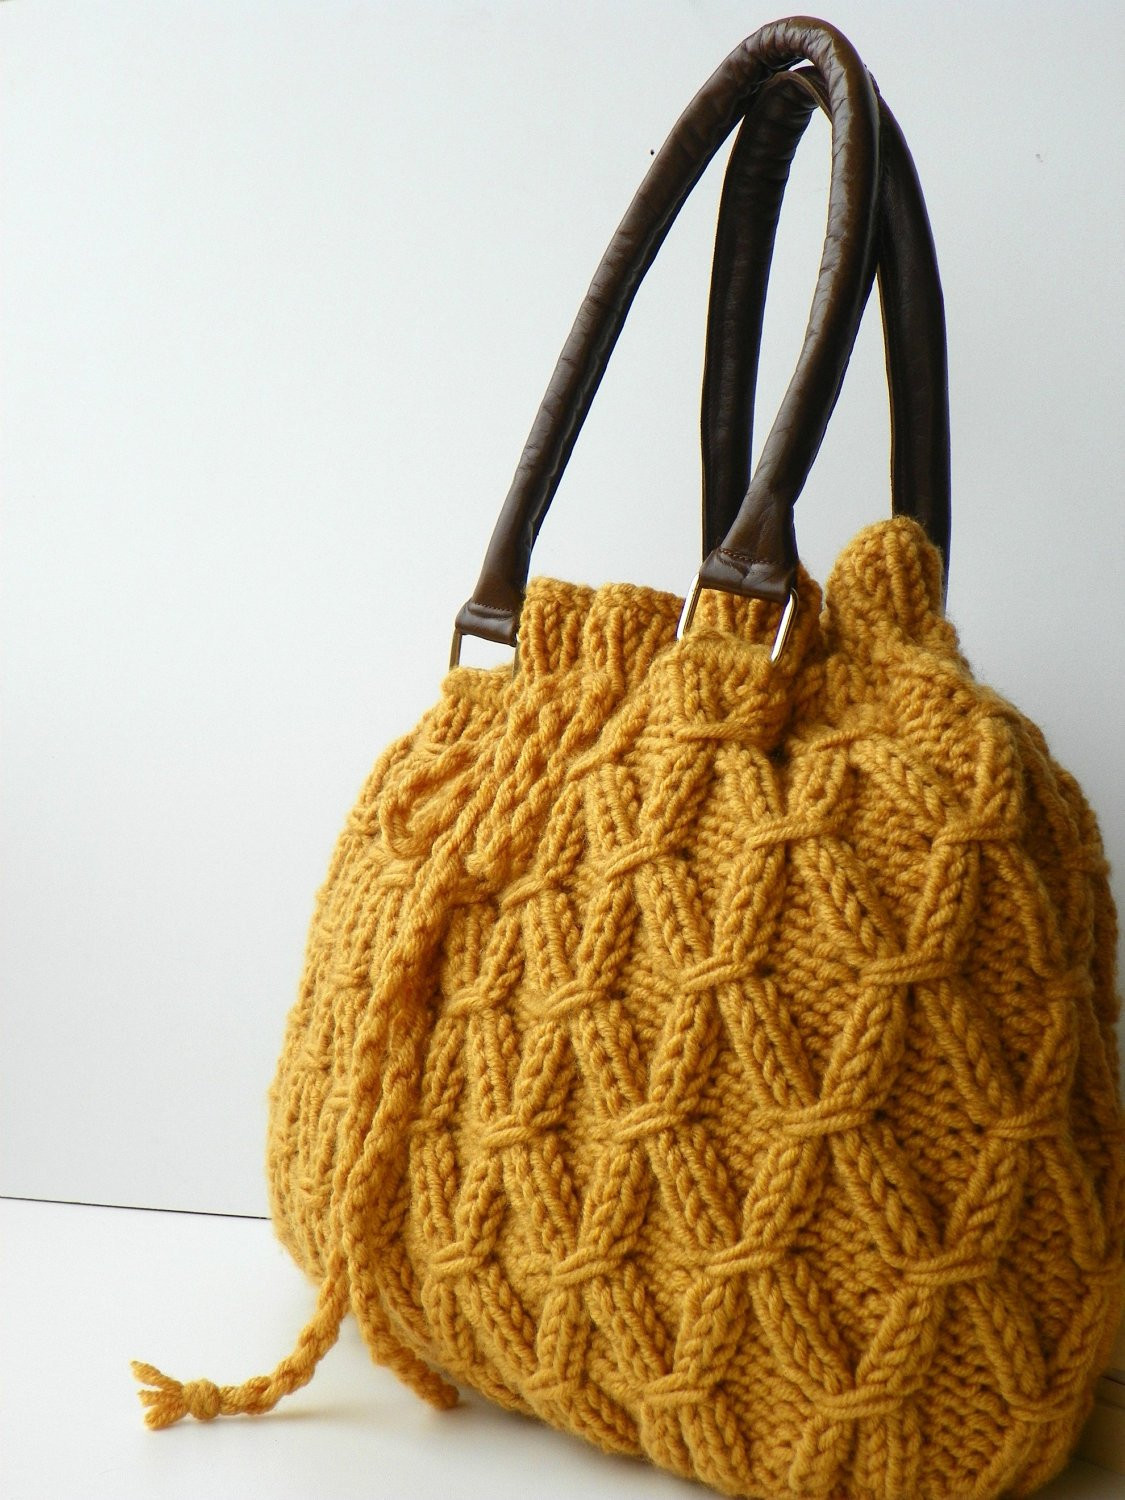 Awesome Knit Bag Fall Fashion Shoulder and Handbag Nzlbags Mustard Knitted Purse Of Amazing 41 Pics Knitted Purse